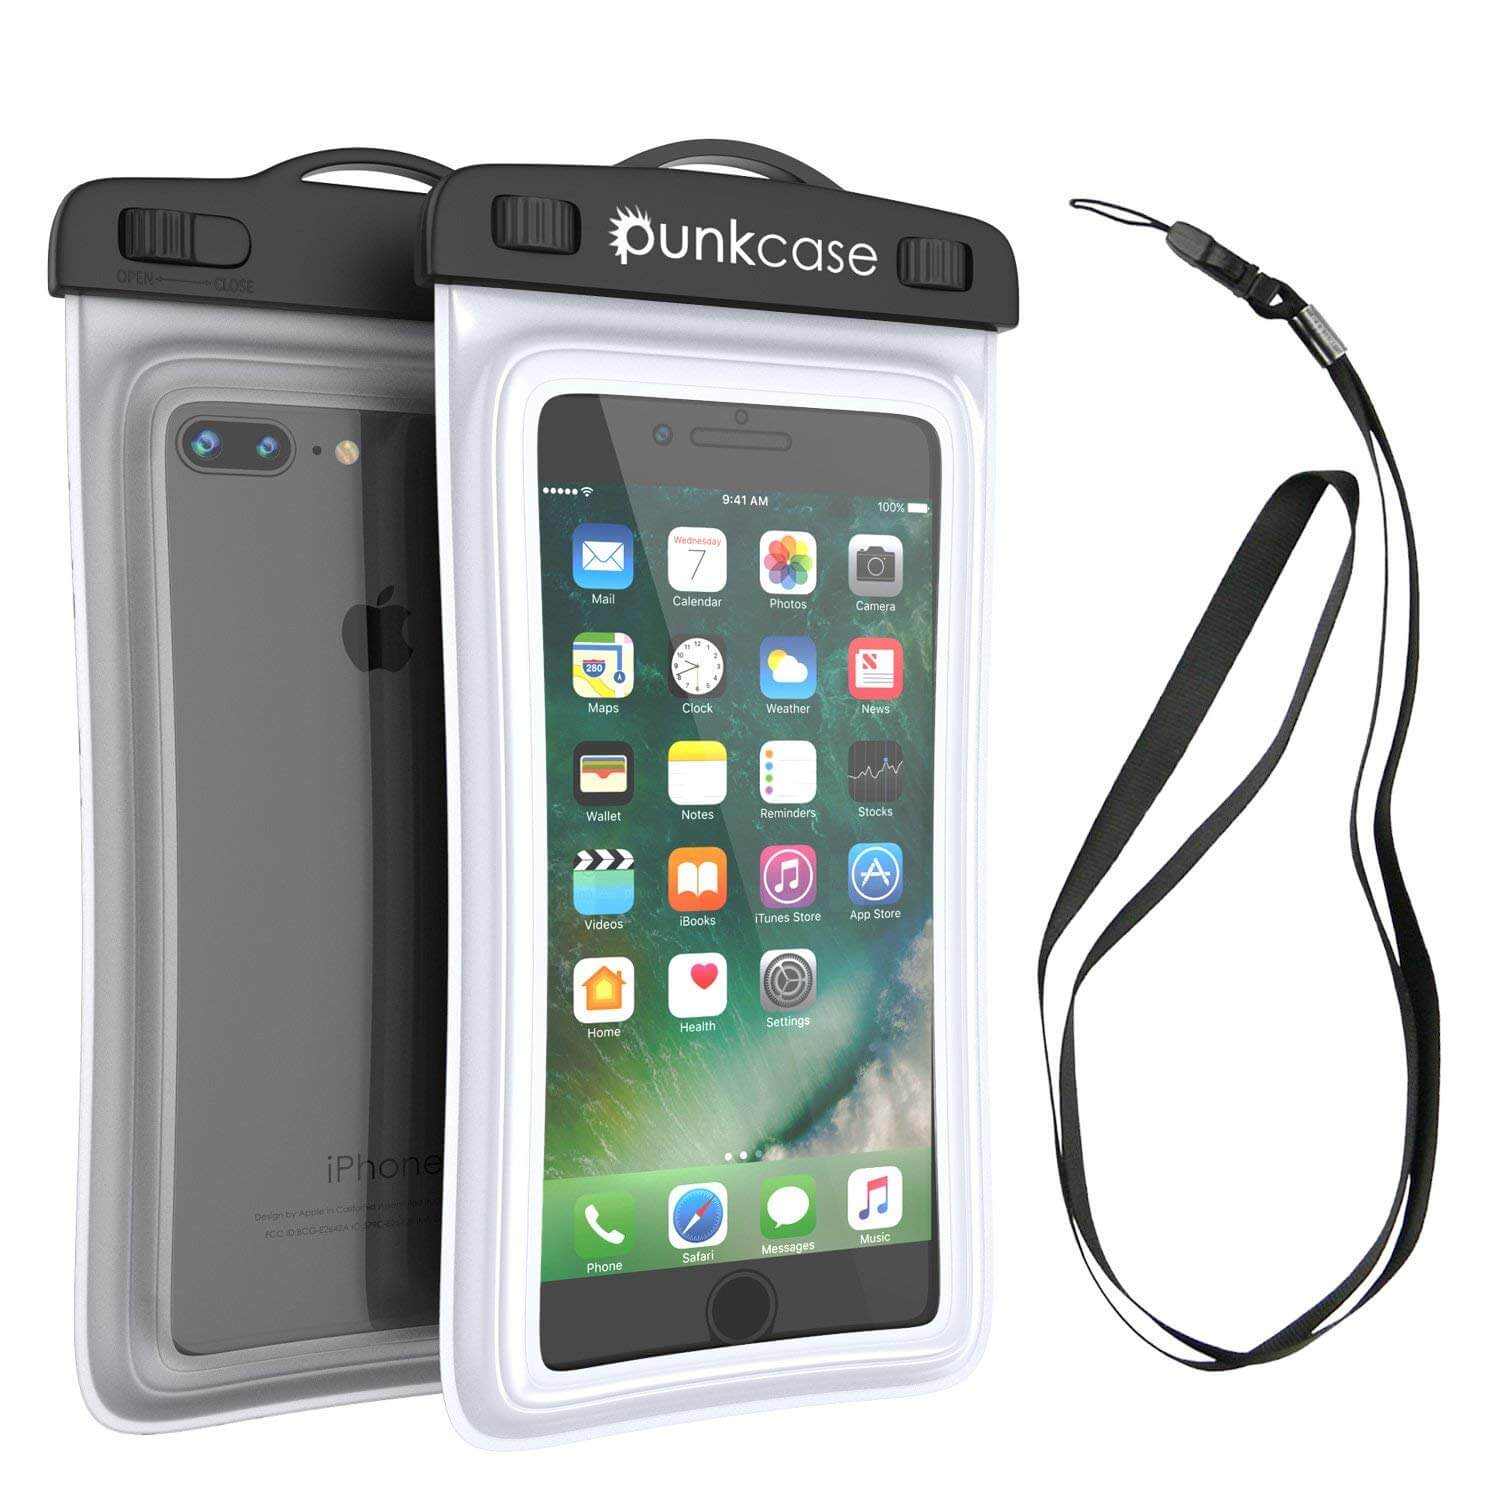 Waterproof Phone Pouch, PunkBag Universal Floating Dry Case Bag for most Cell Phones [White]